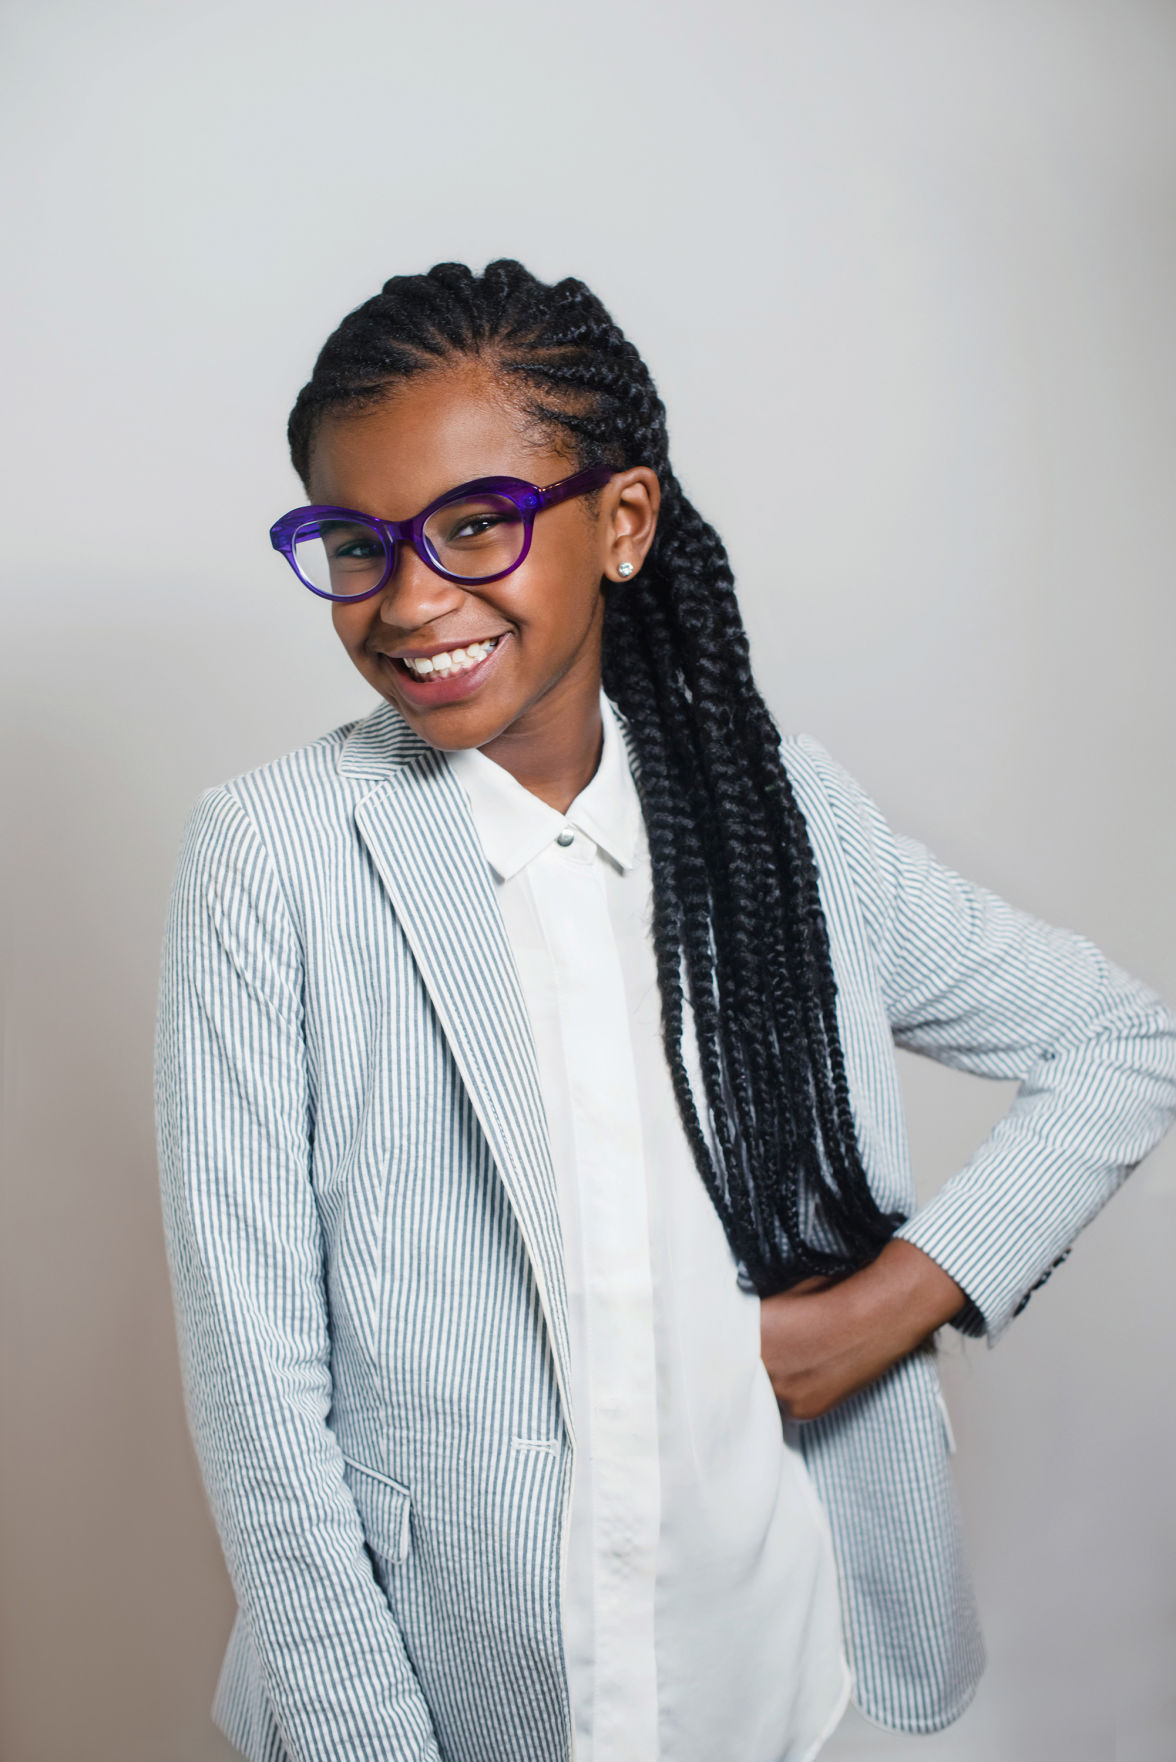 Marley Dias, TNS photo